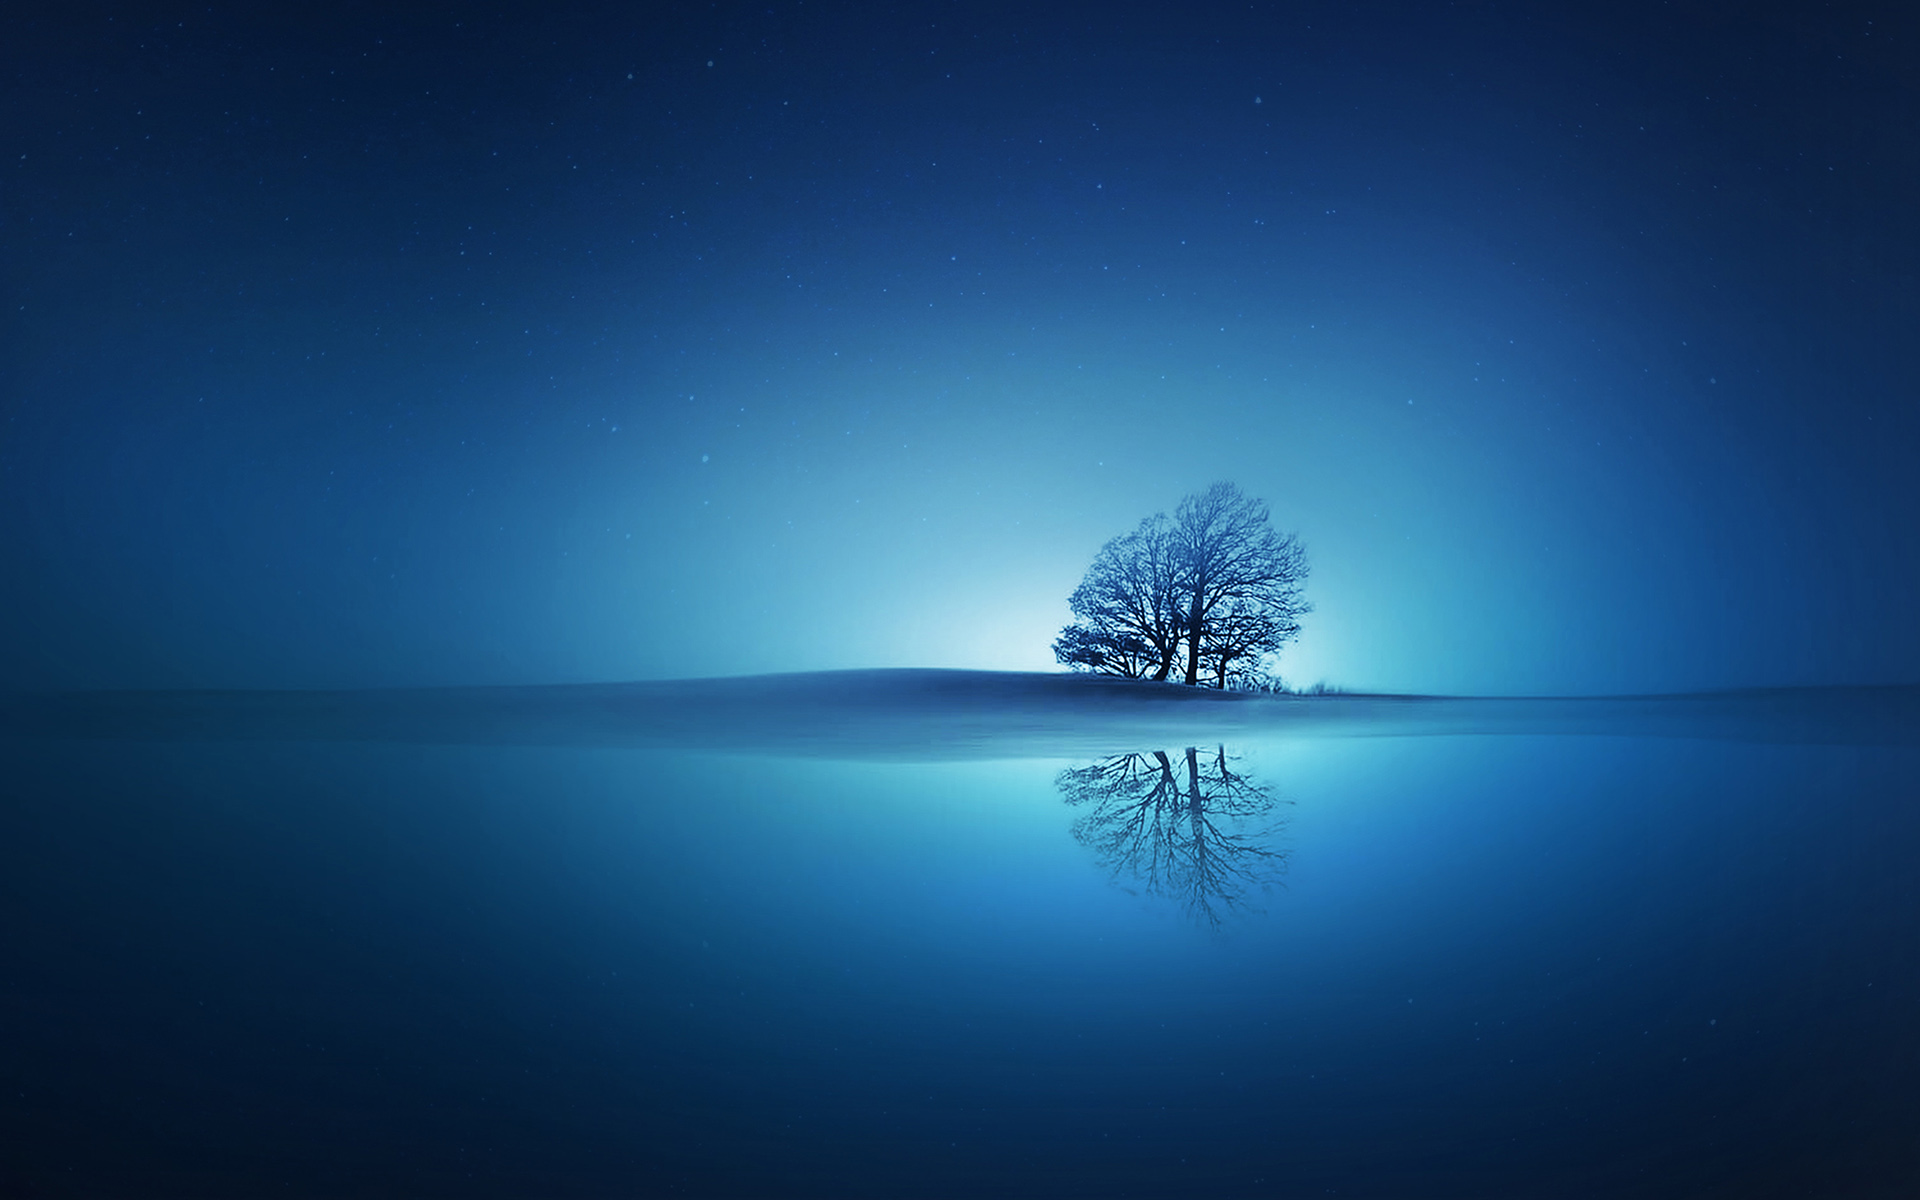 Blue Reflections